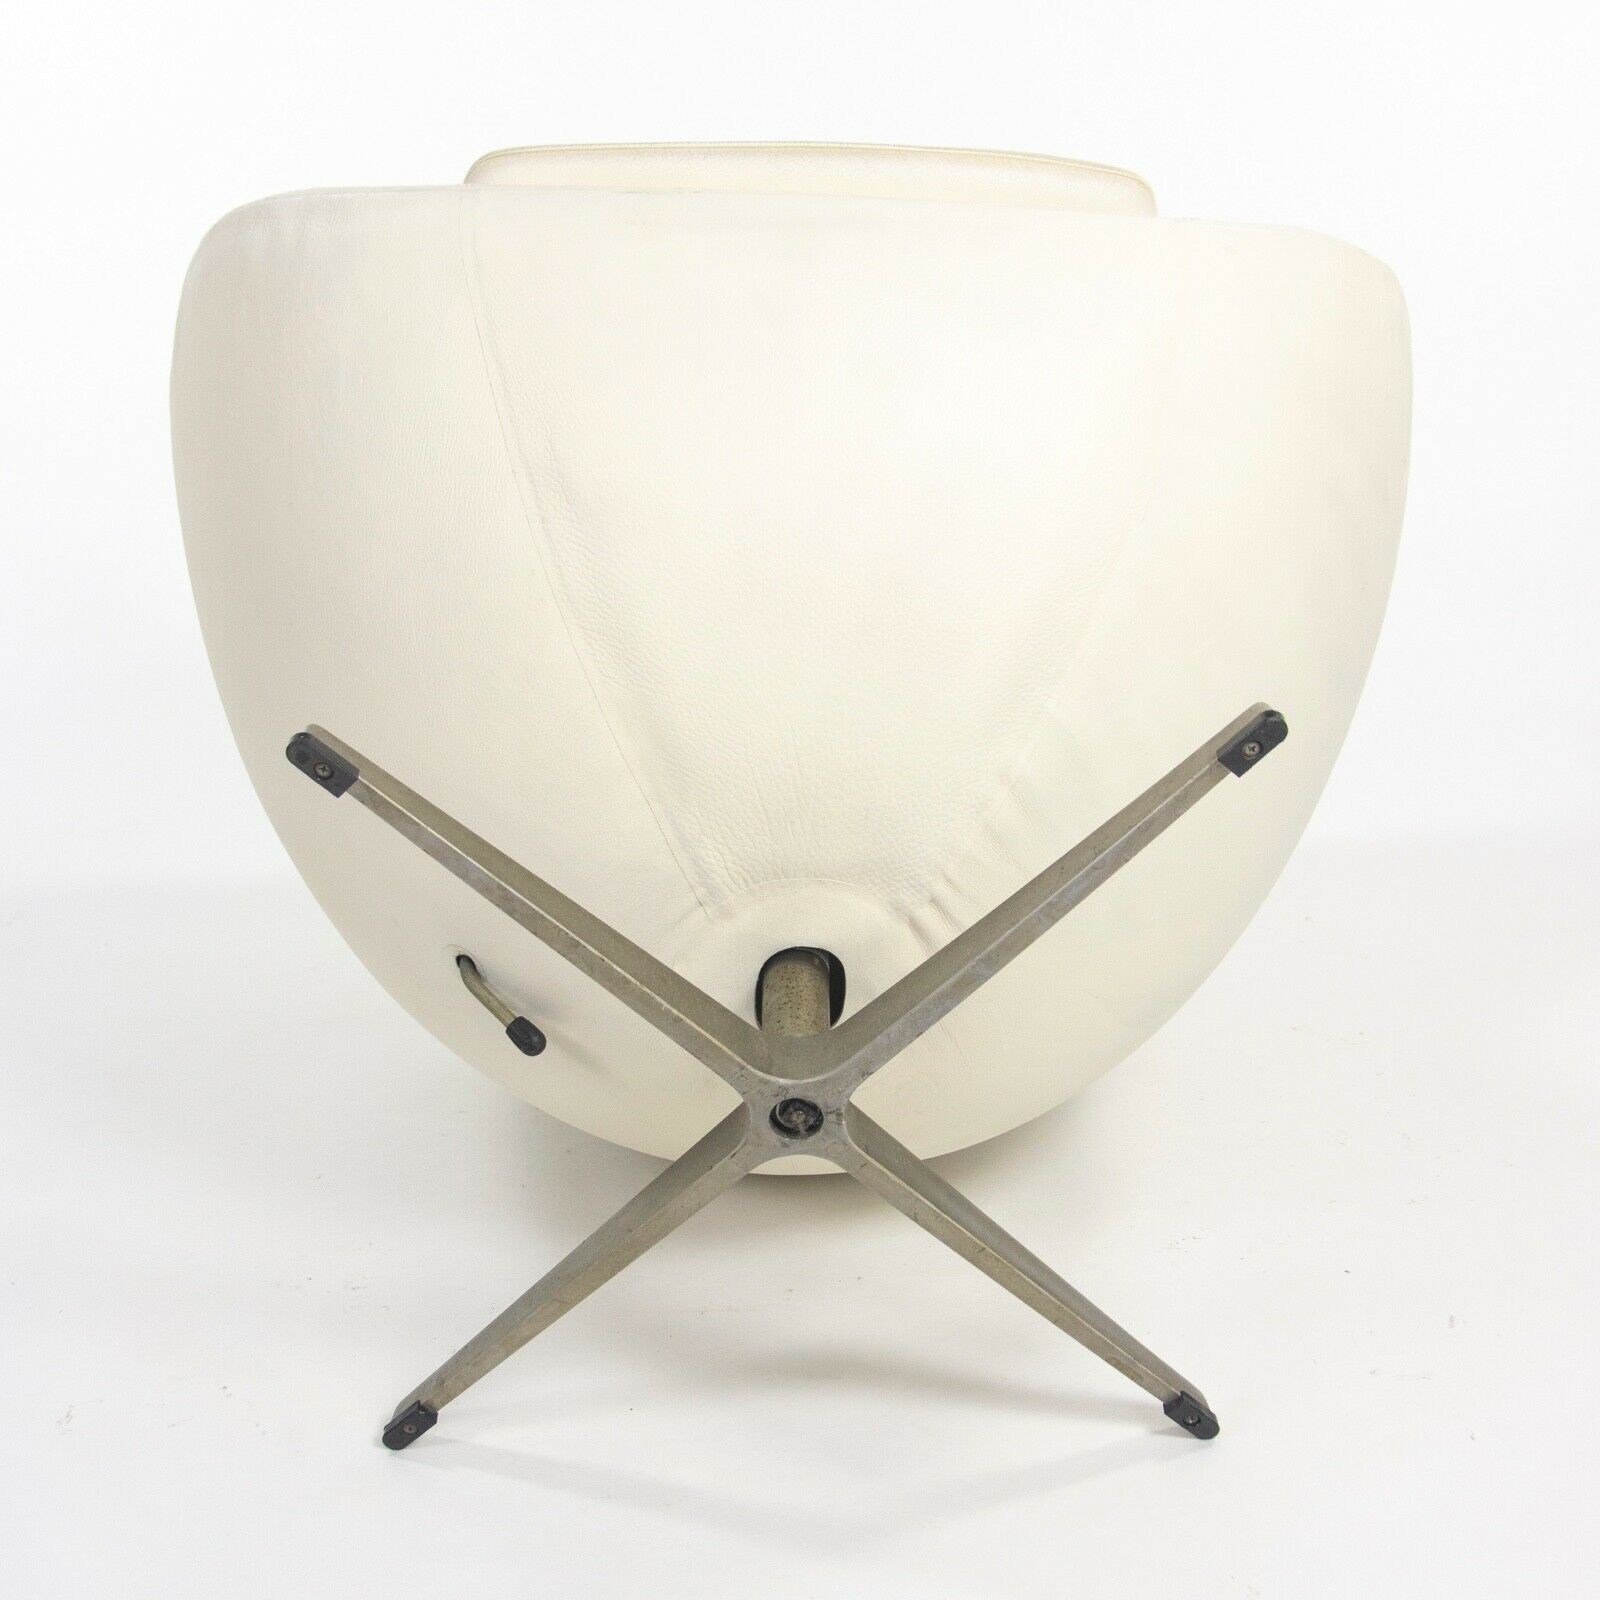 1998 Arne Jacobsen for Fritz Hansen White Leather Egg Chair with Ottoman